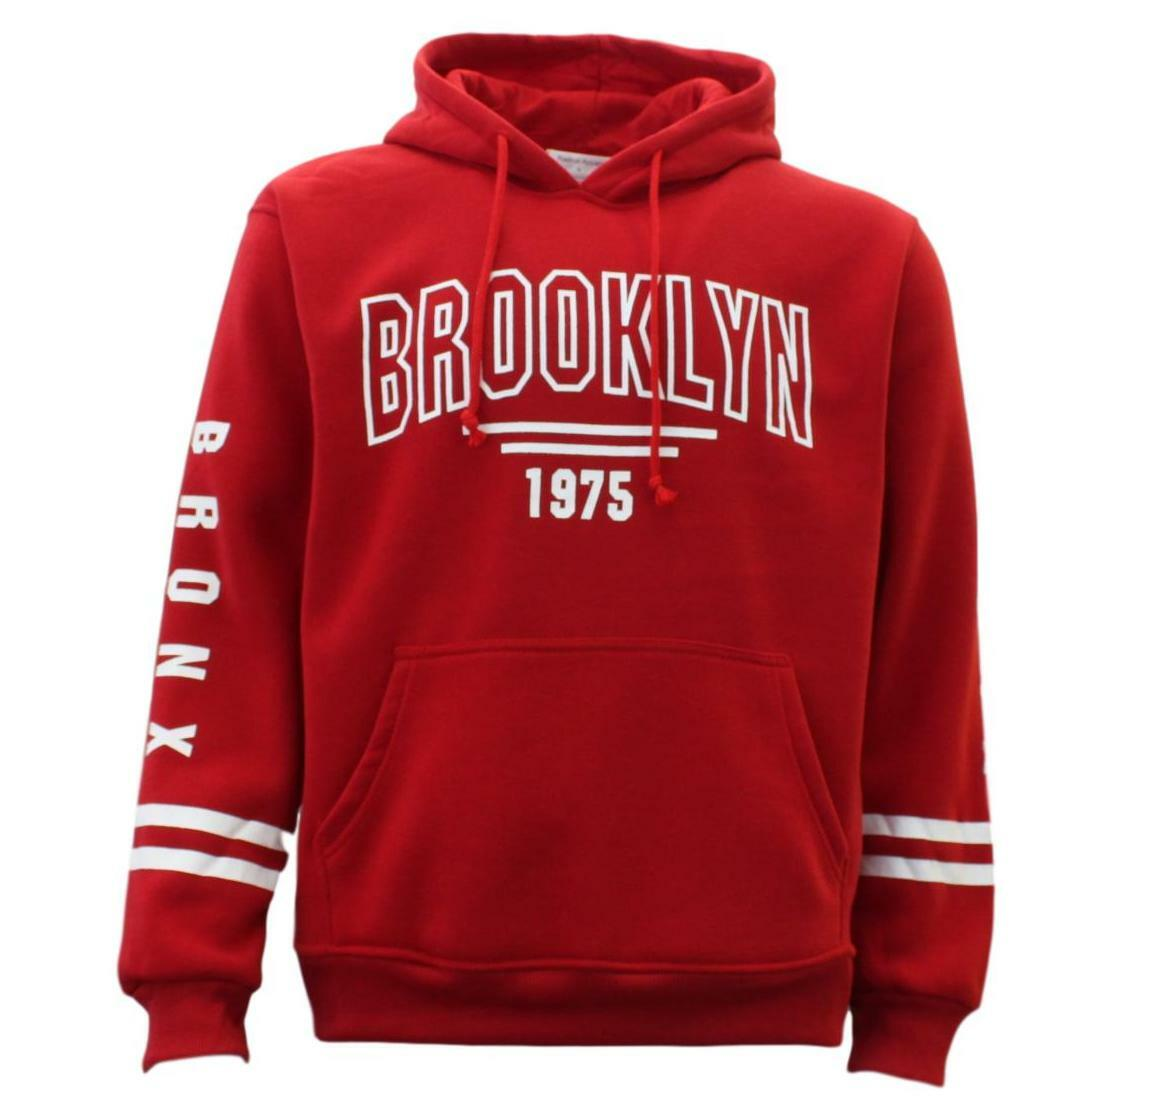 Men-039-s-Adult-Unisex-Hoodie-Jumper-Casual-Pullover-Sports-Brooklyn-1975 thumbnail 7